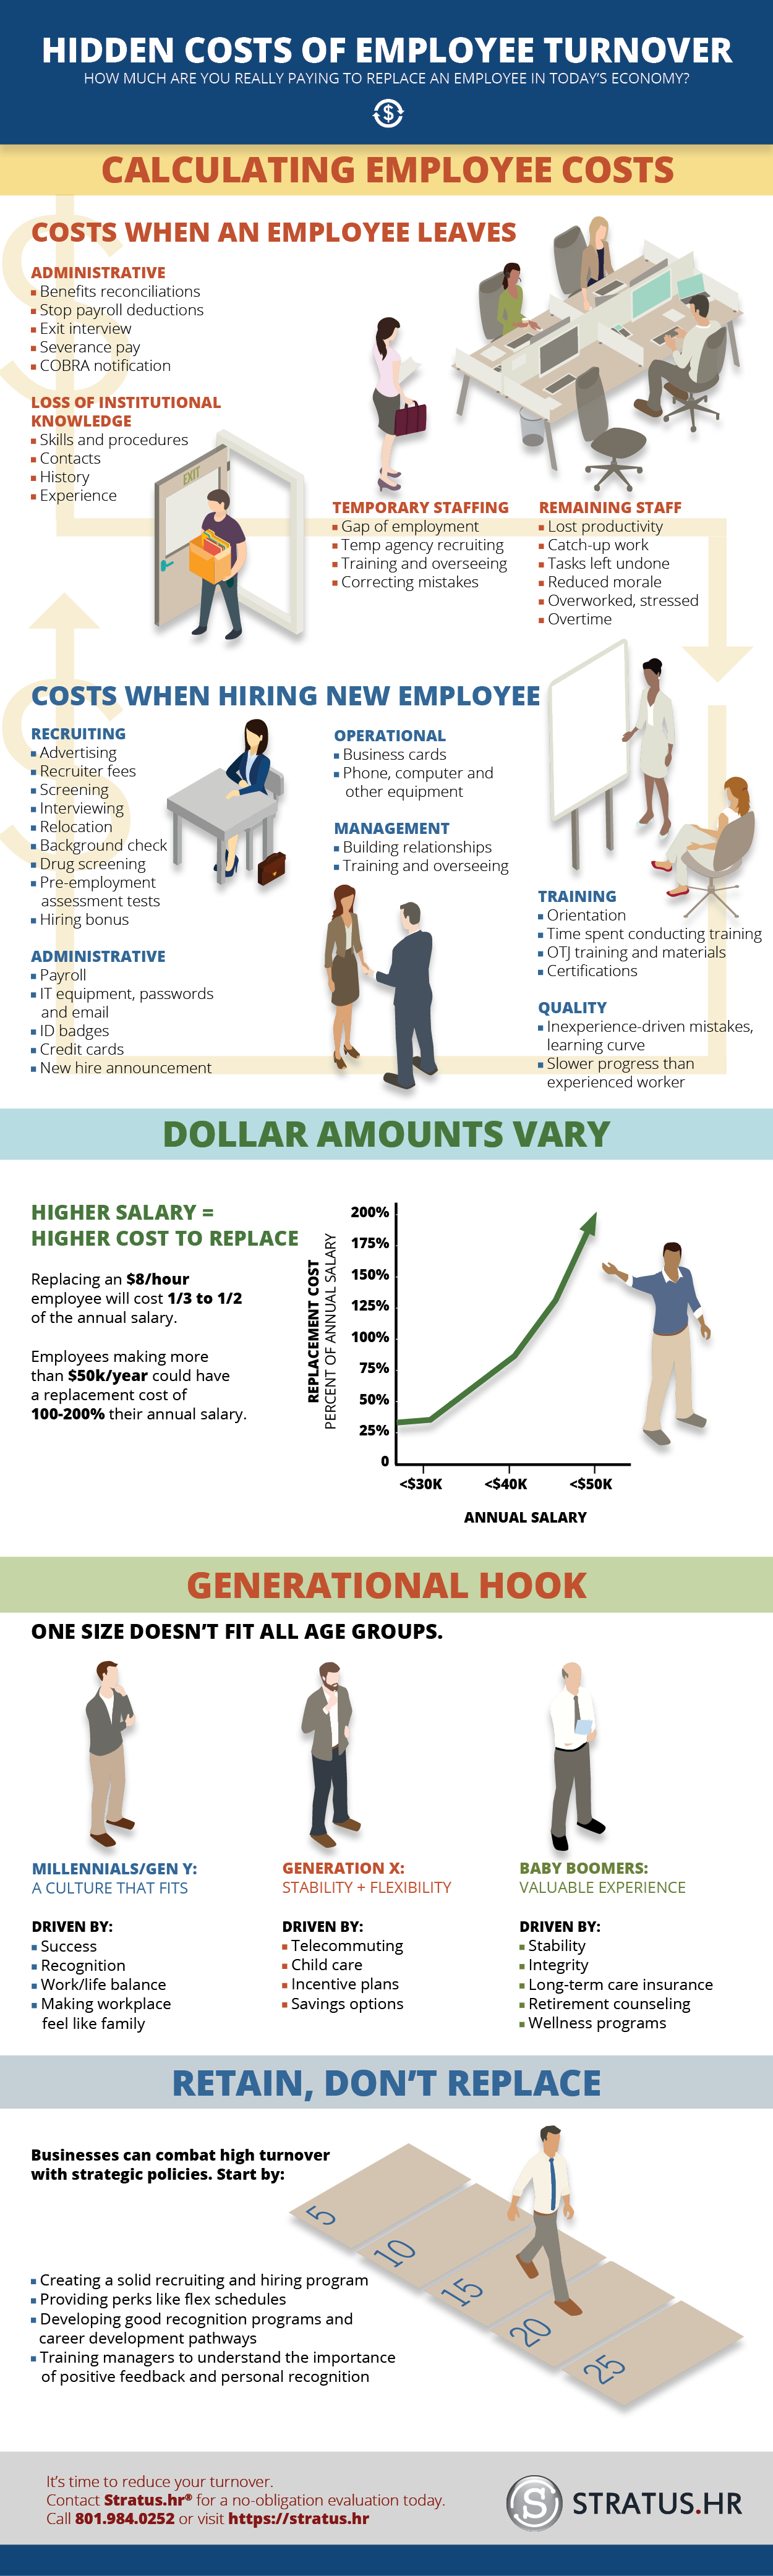 Employee Turnover Infographic